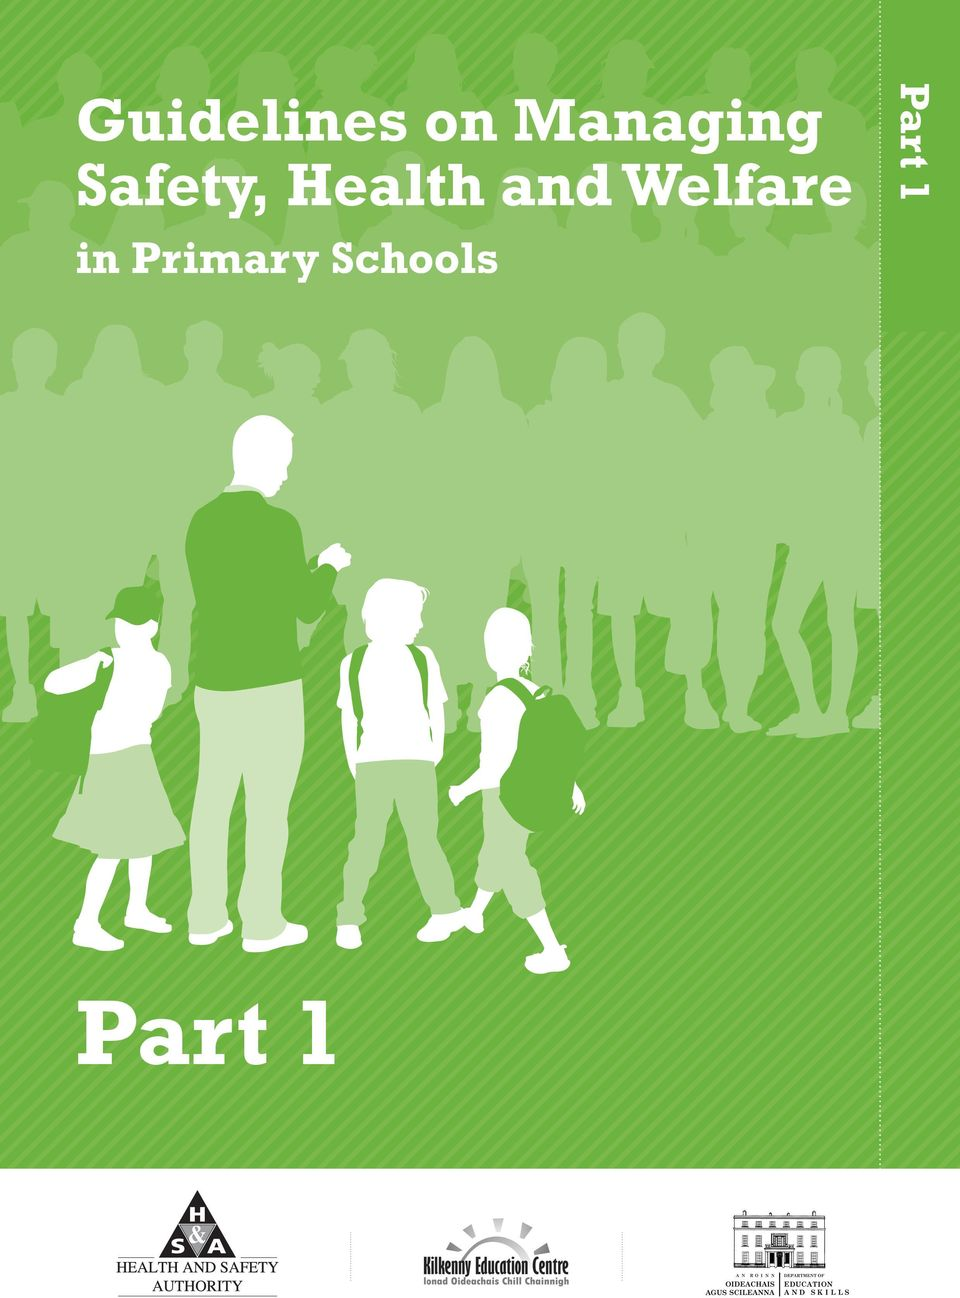 ealth and Welfare in